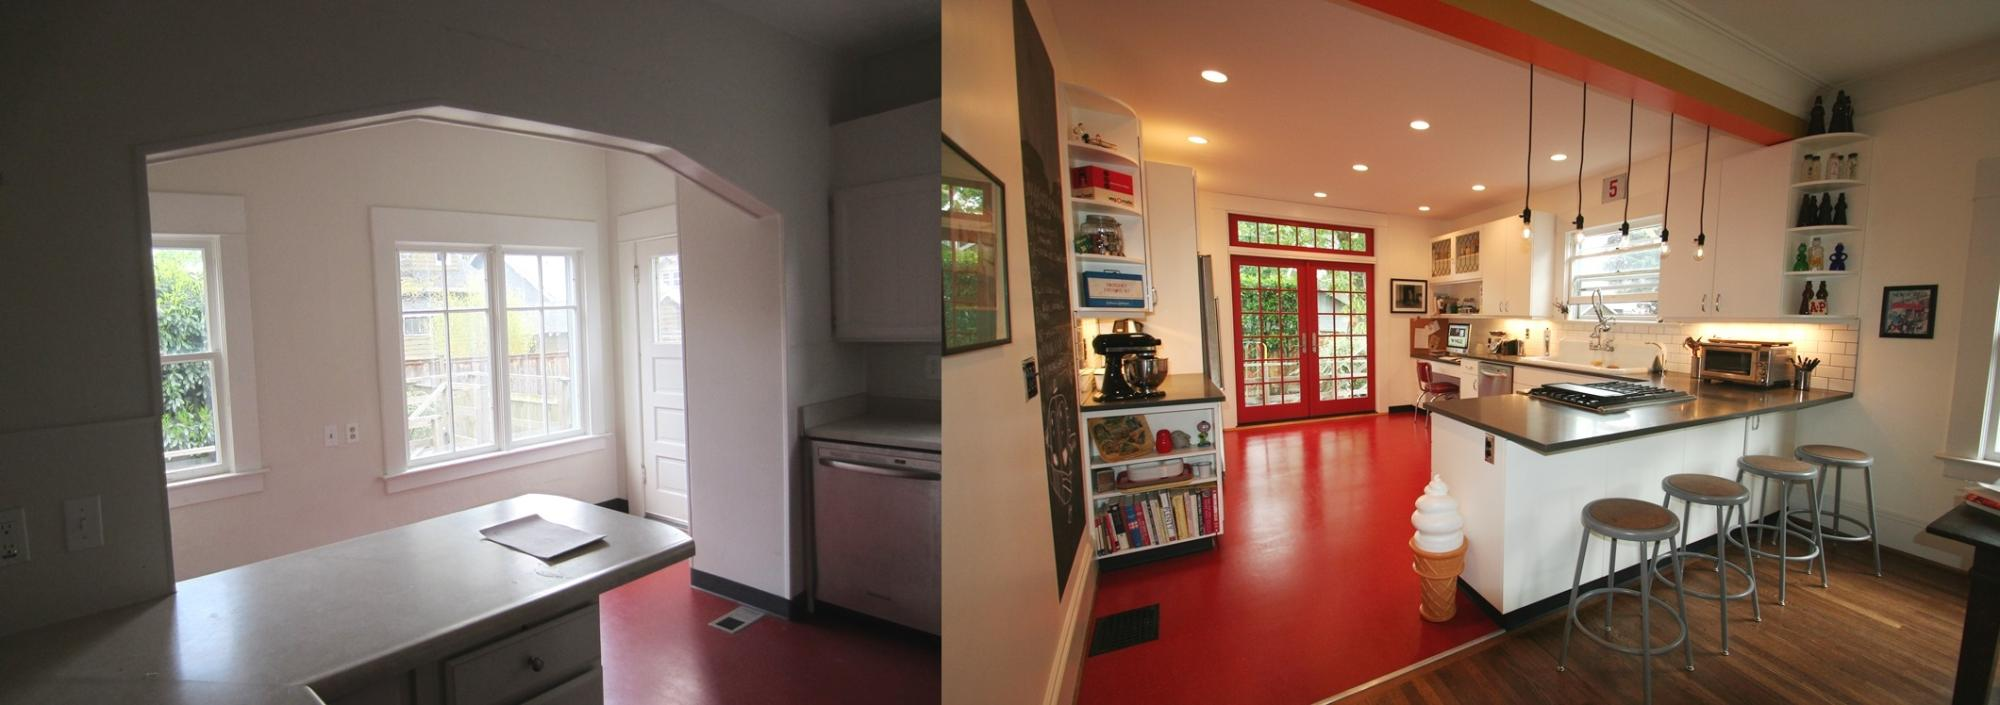 before___after_kitchen_6.jpg